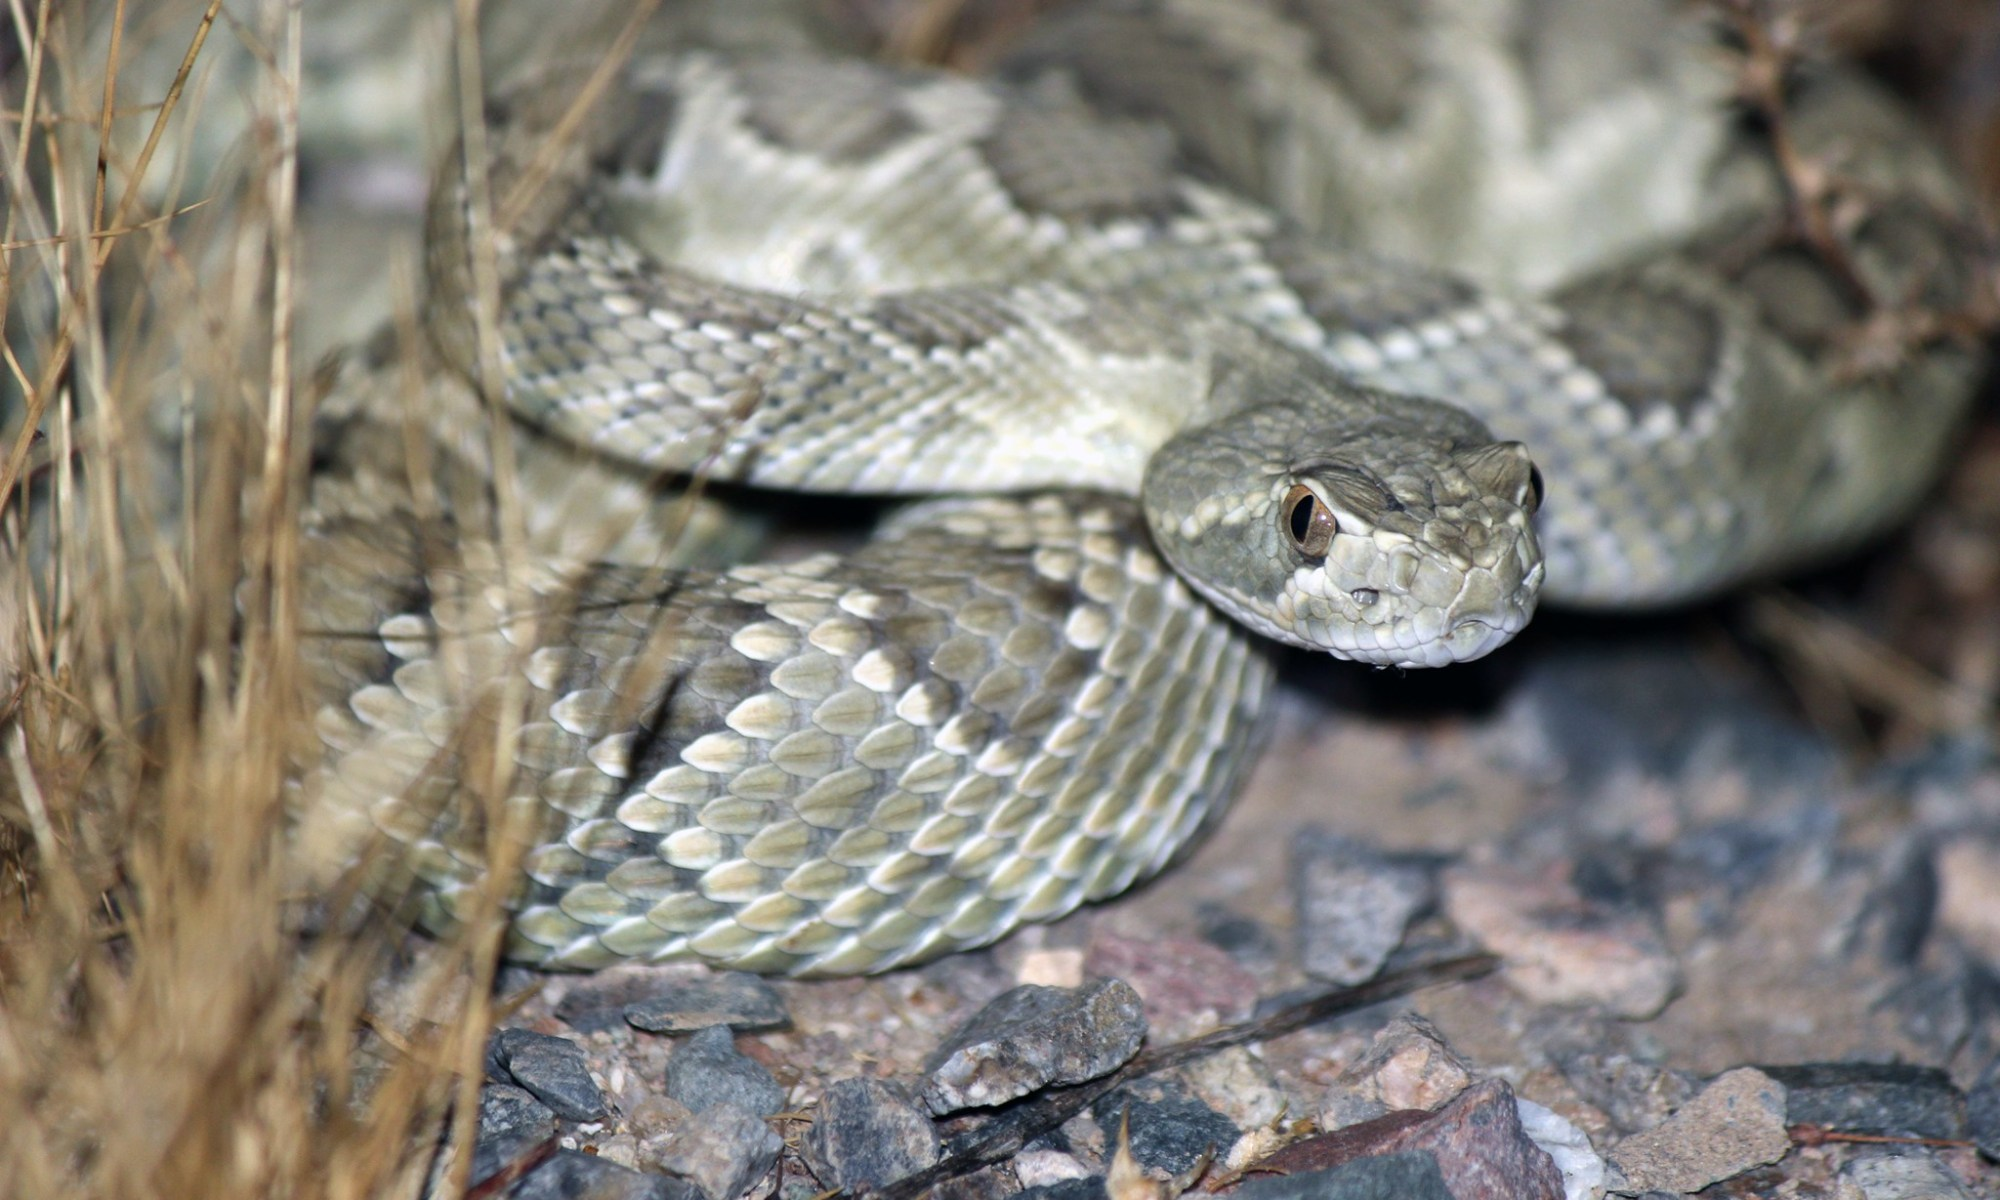 Mohave Rattlesnake photo by Kameron Orr